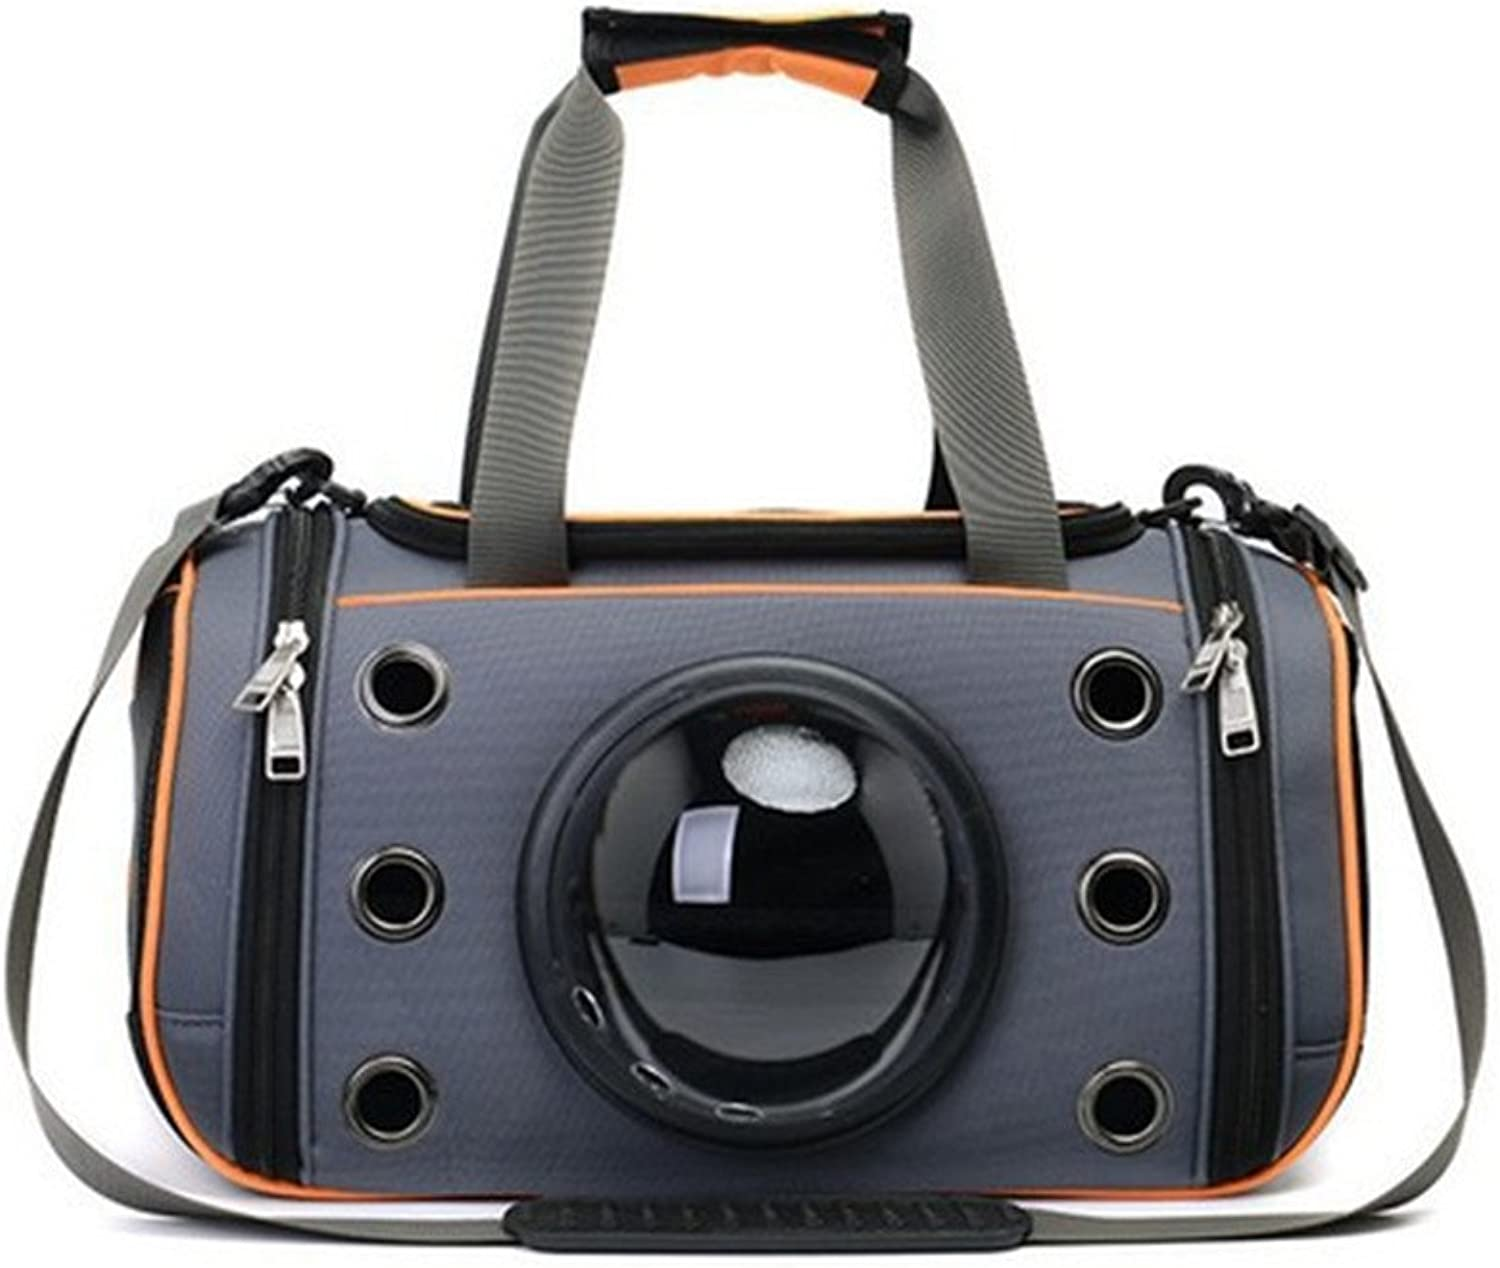 Space Capsule Pet fornisce Cat Astronaut Teddy Dog Pet bag Cat pack Portable Dog pack Space travel chalet Dimensione bag (Colore: Orange, Dimensione: M)